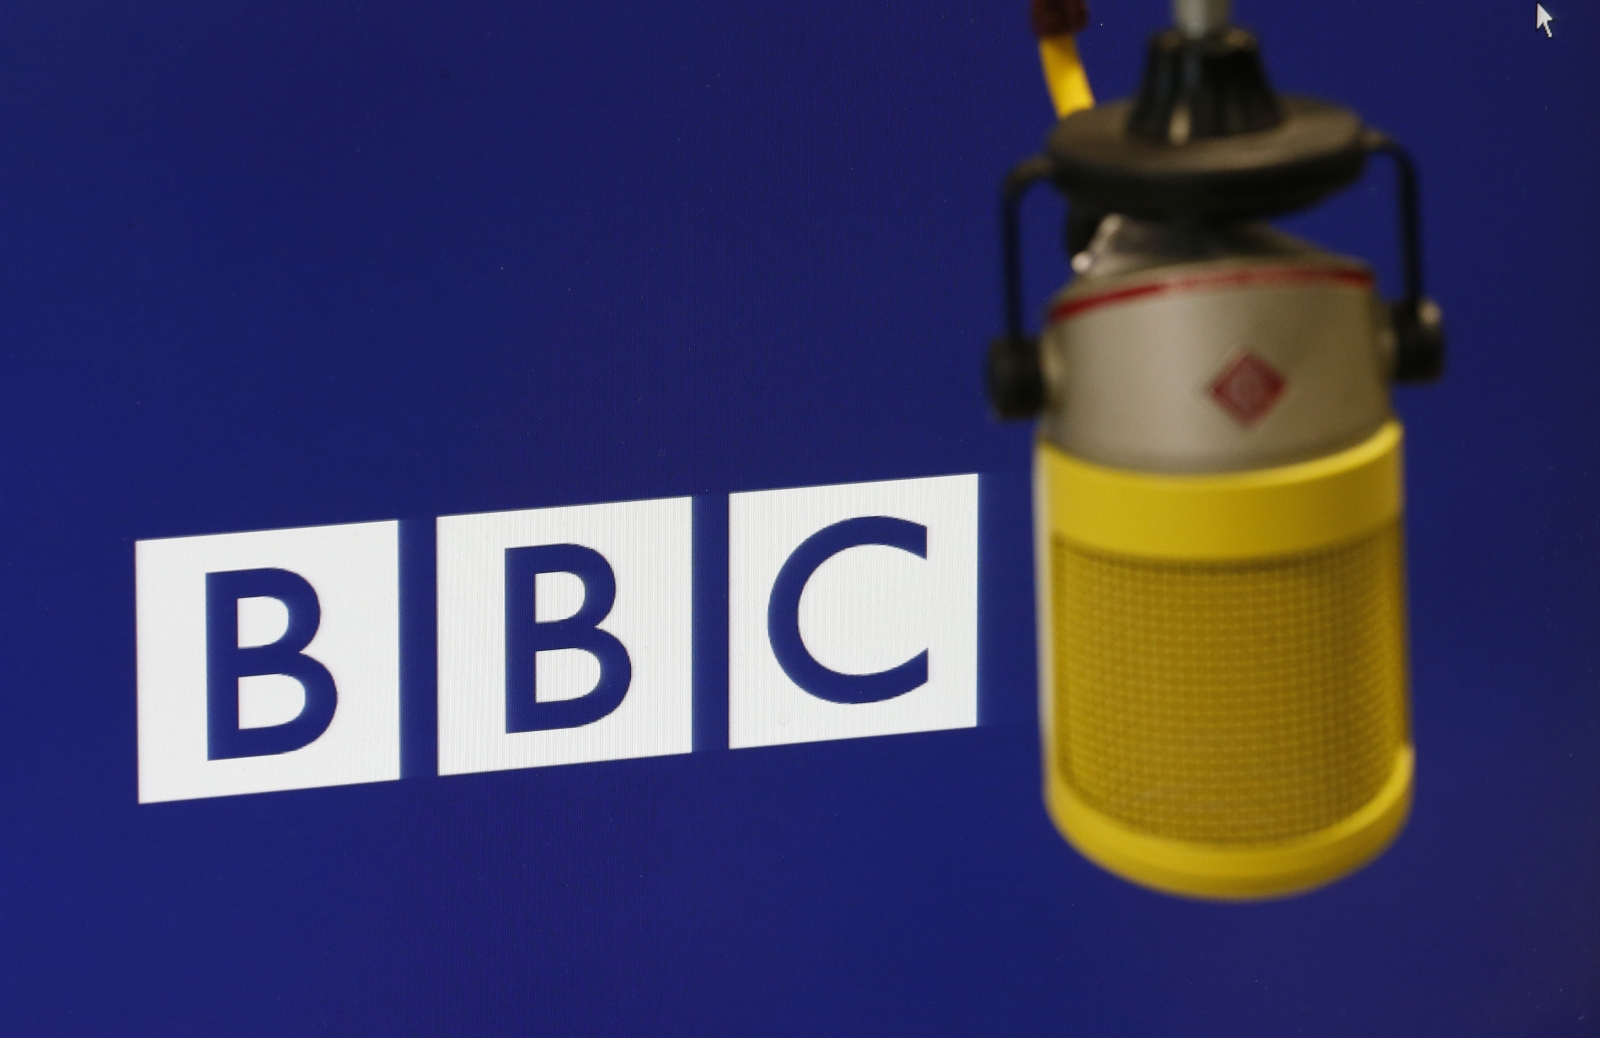 BBC to broadcast in 4 more Indian languages